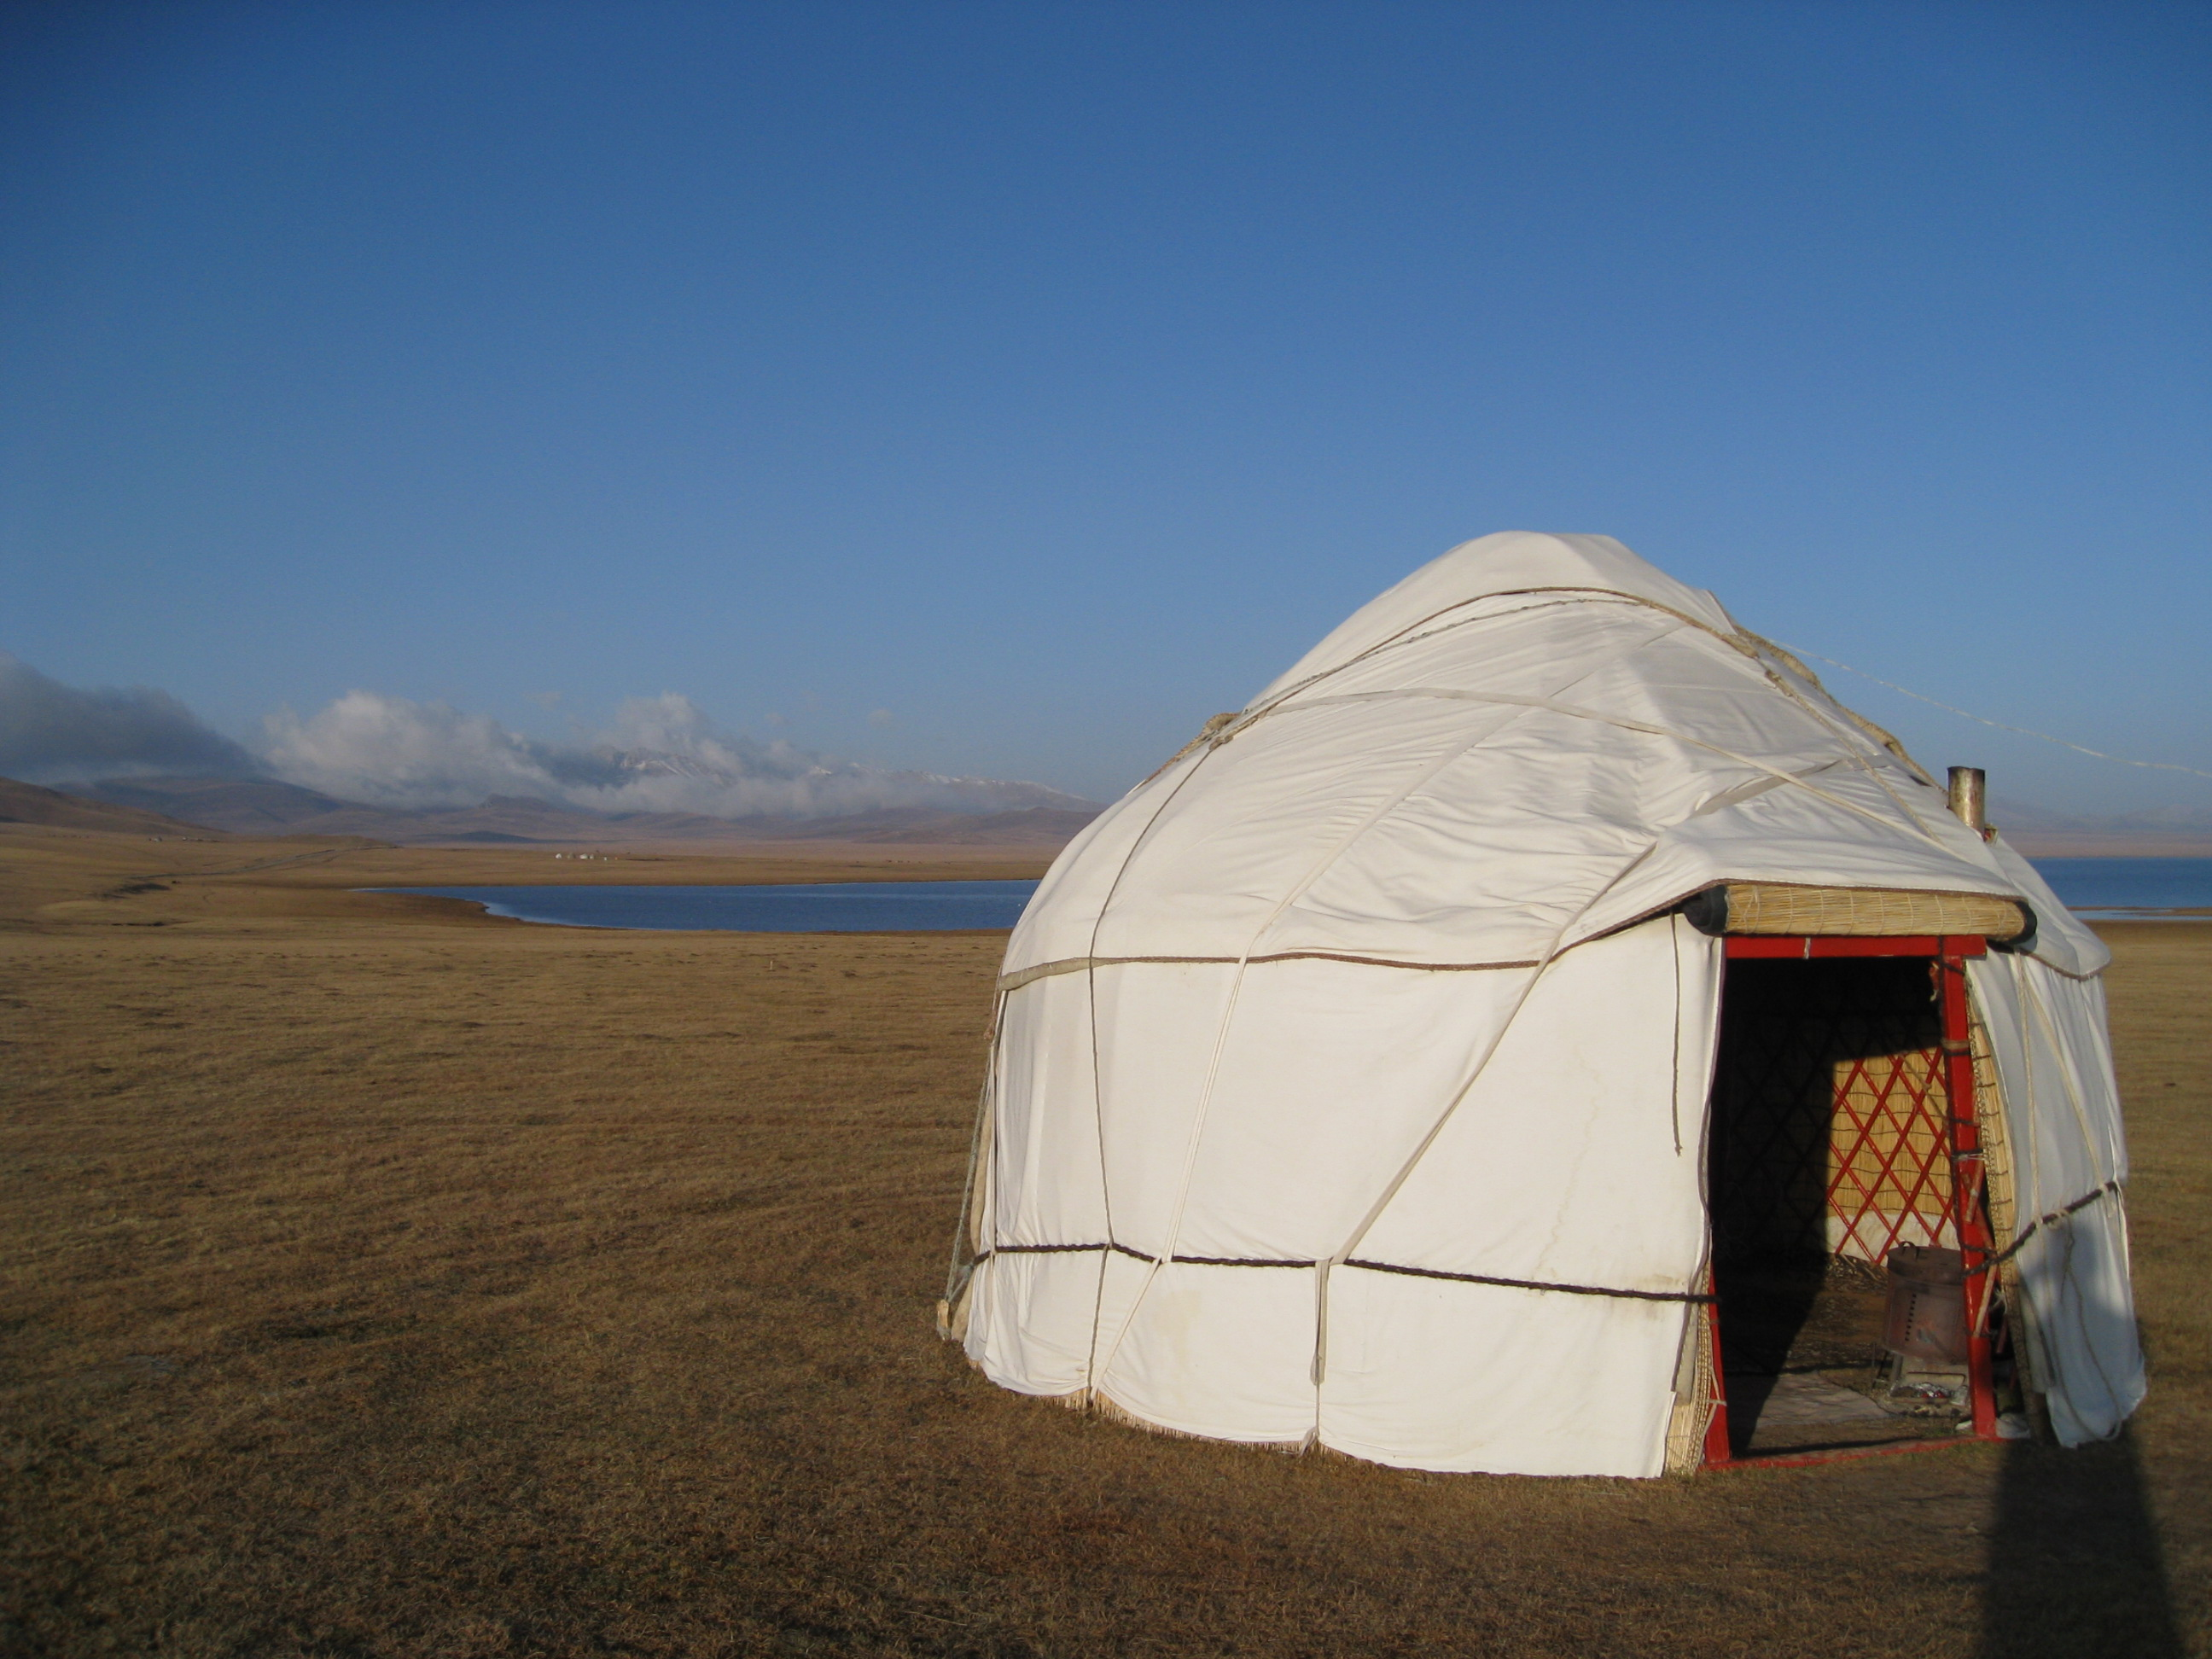 File Our Yurt Jpg Wikimedia Commons Check out our product range to see what will work best for your. https commons wikimedia org wiki file our yurt jpg